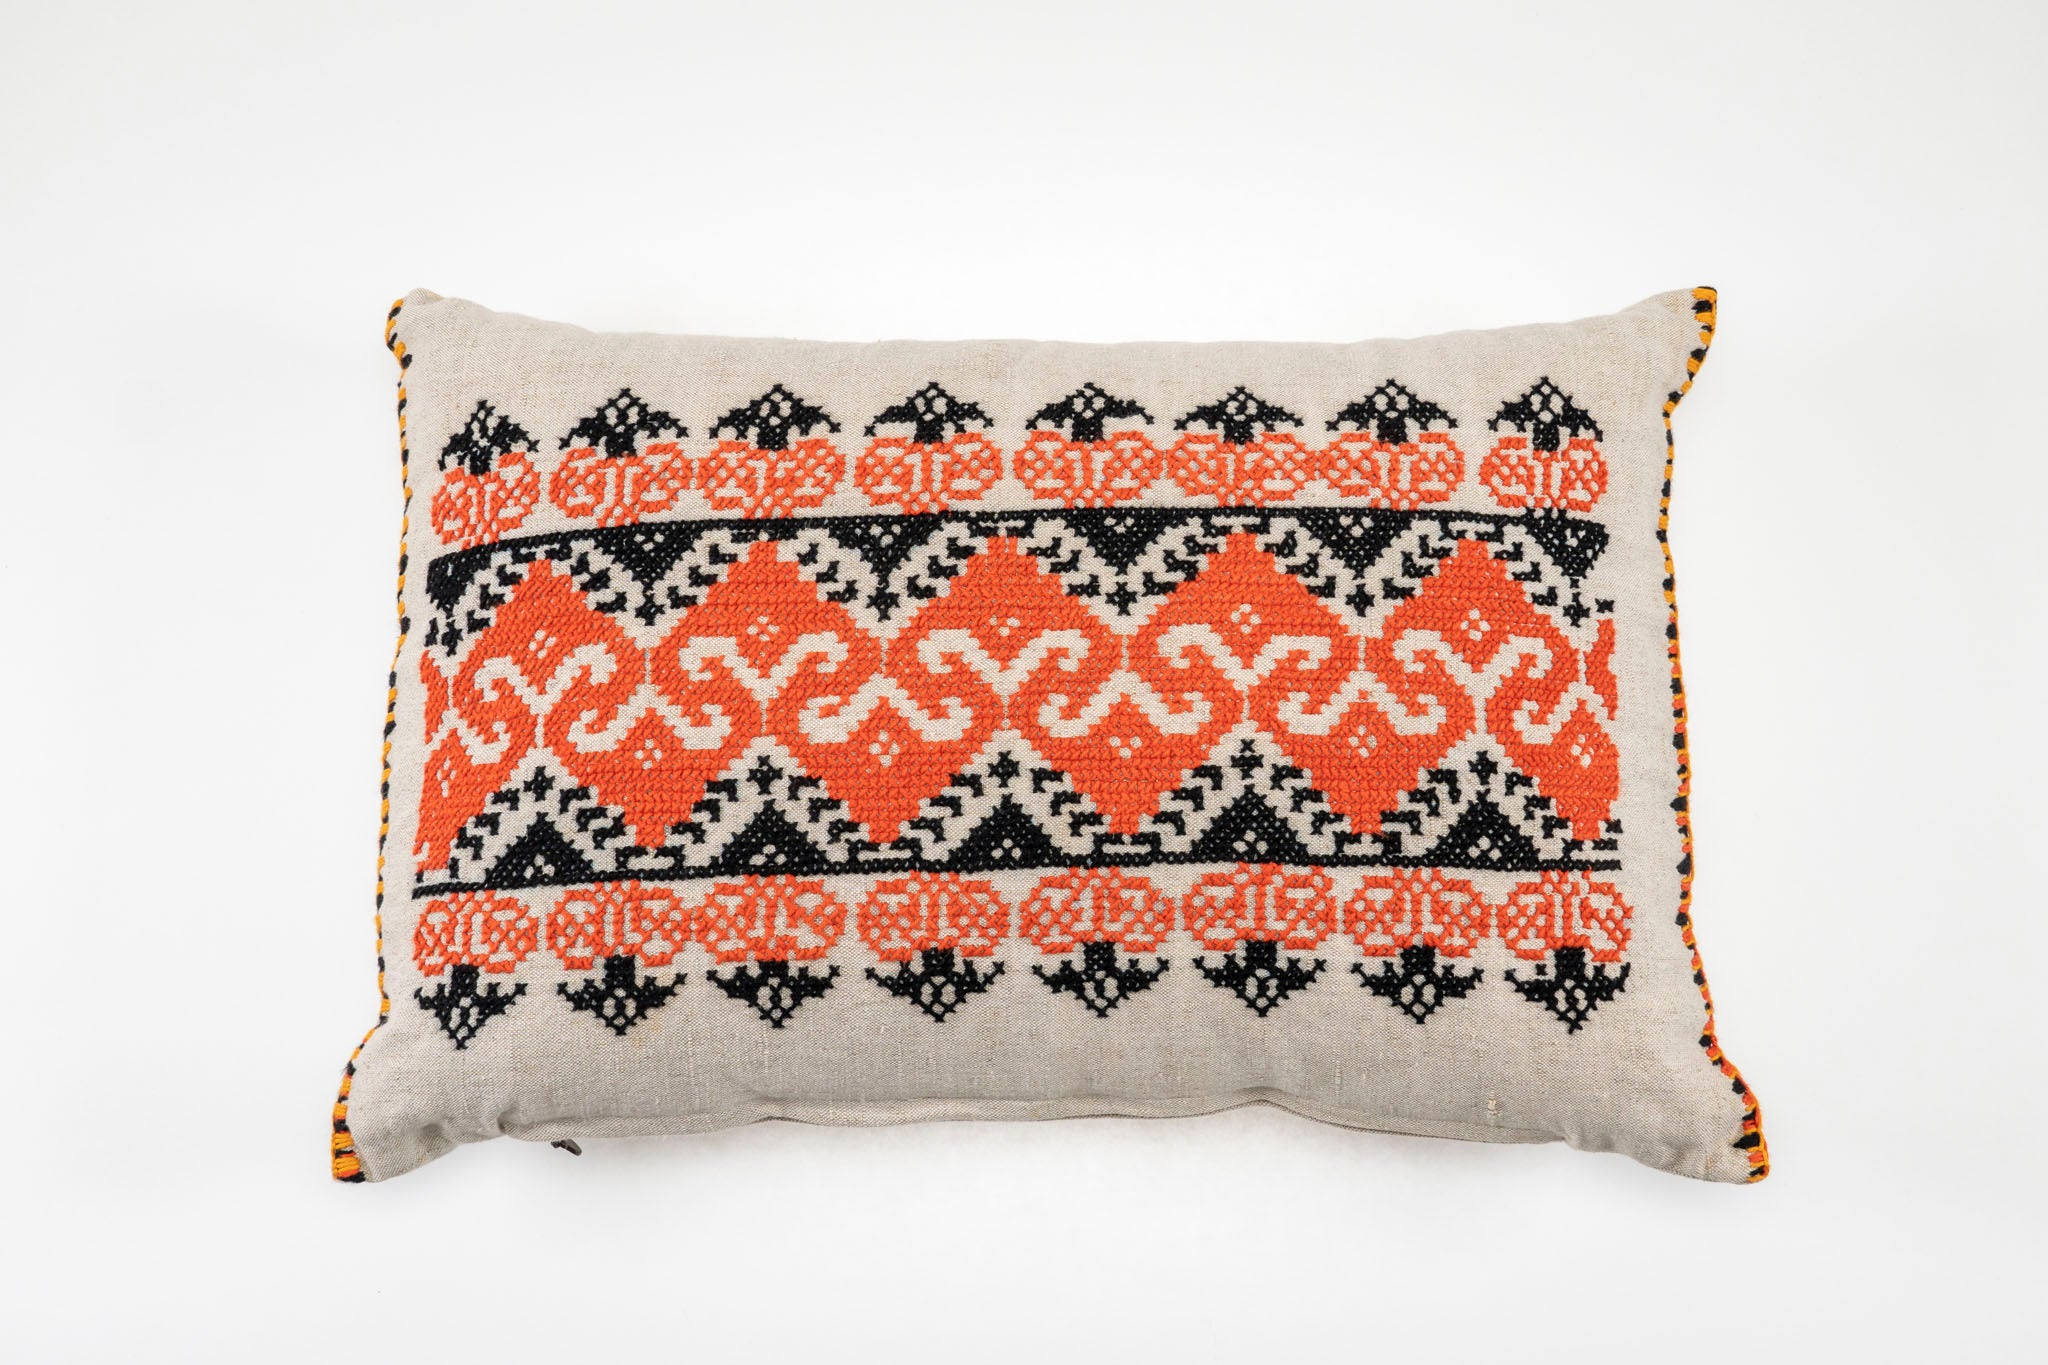 Pillow: Embroidered antique Hungarian hemp